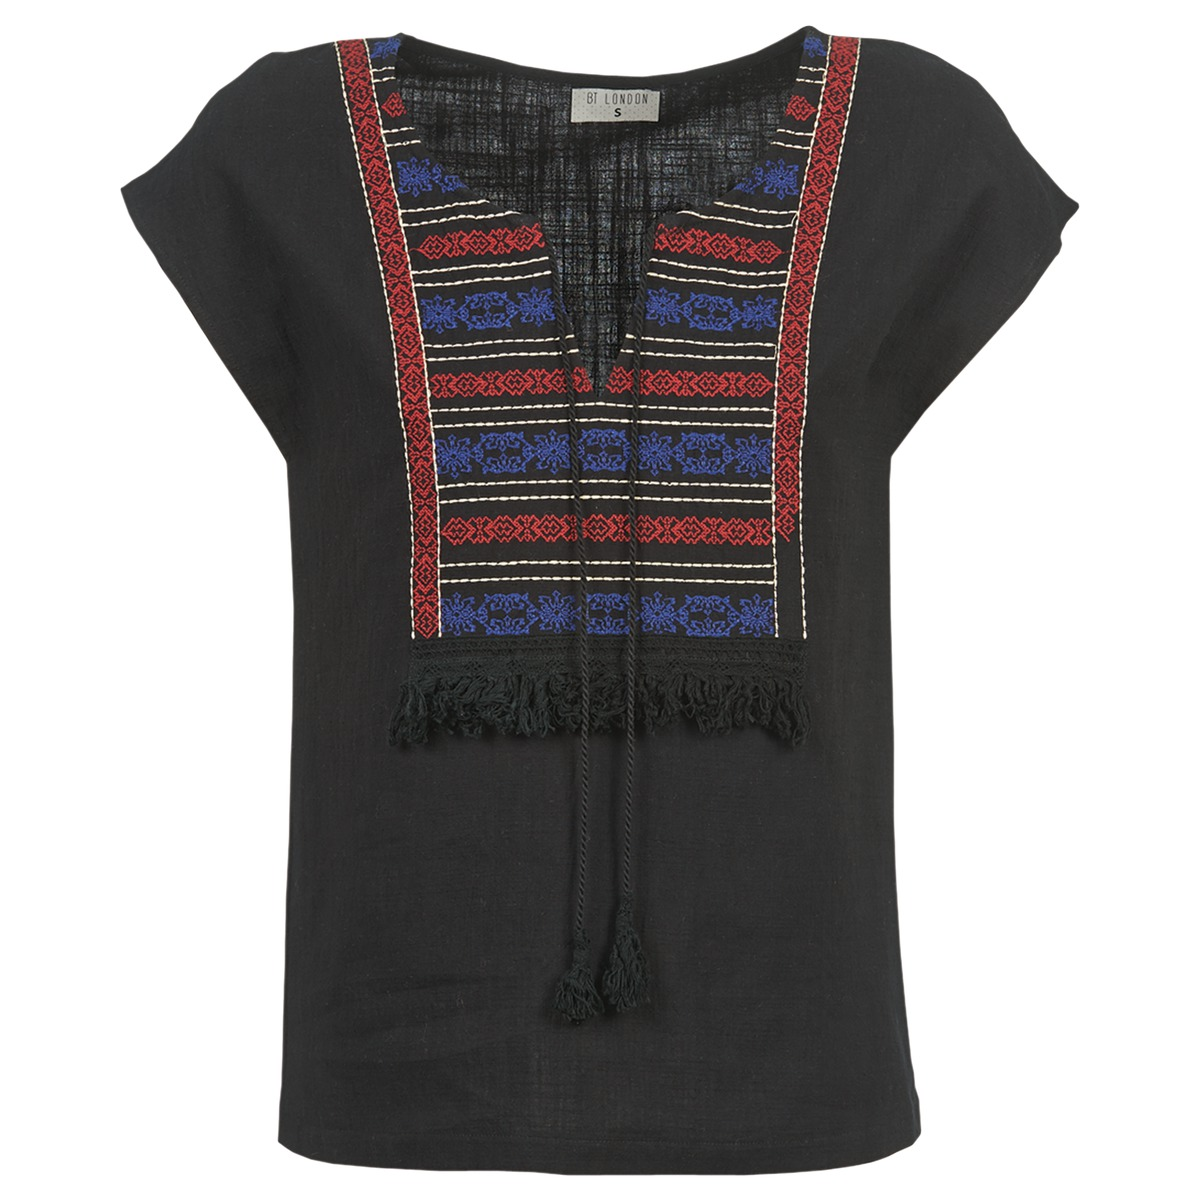 Blouses BT London ETROBOLE Black